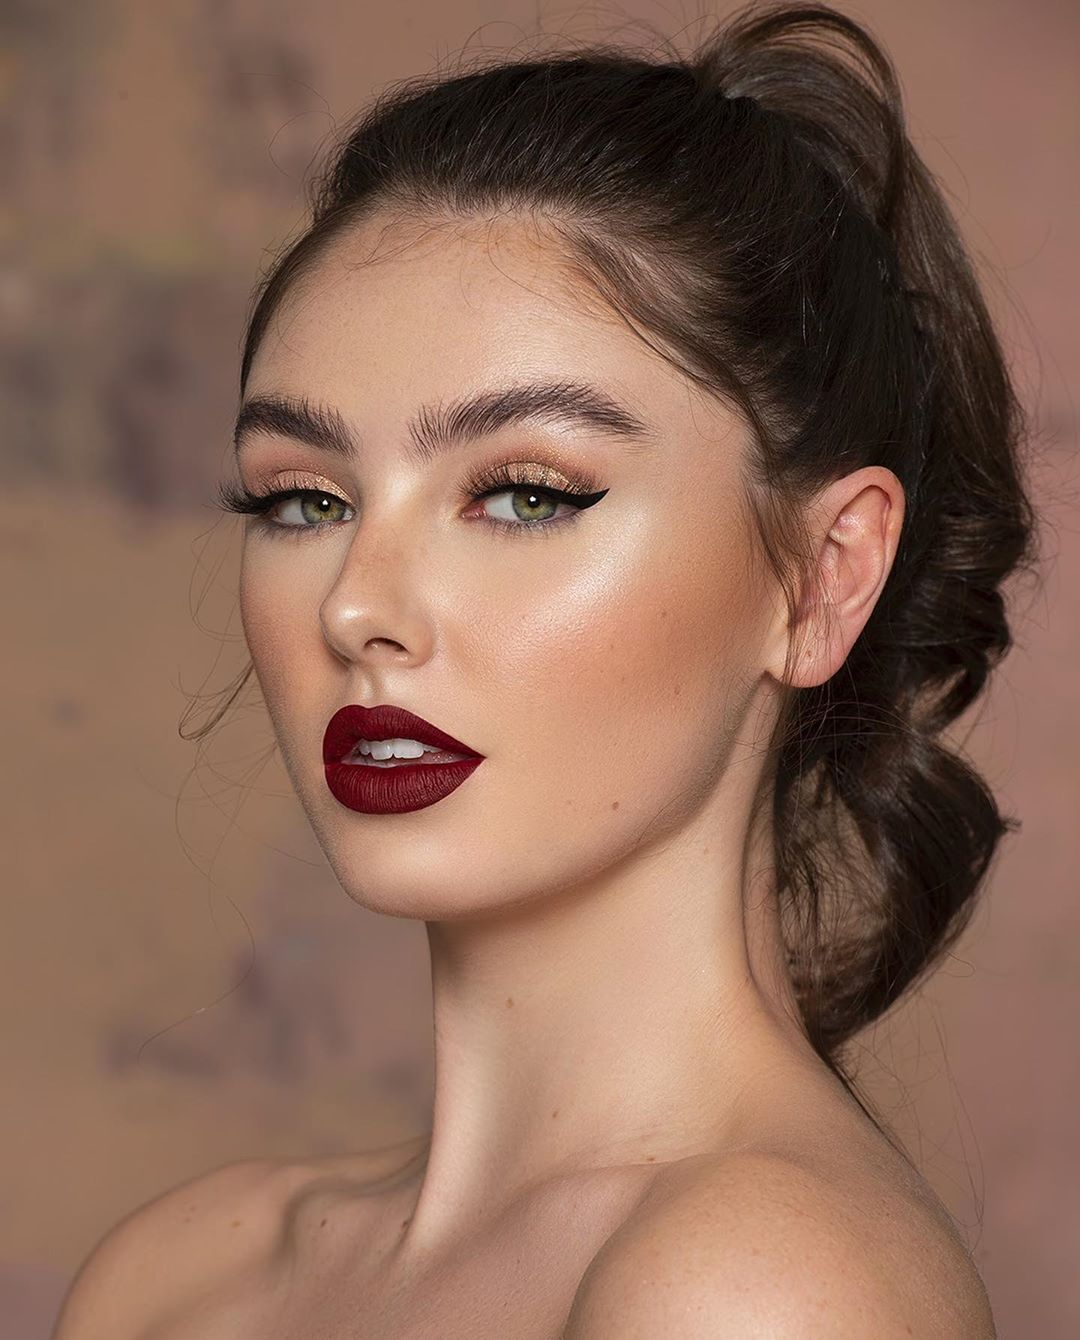 35 7k Likes 1 607 Comments Nora Bo Awadh Nb Nora1352 On Instagram حبيتوها ب اي روج Dark Flaming Fl Red Lip Makeup Bridal Makeup Looks Makeup Looks